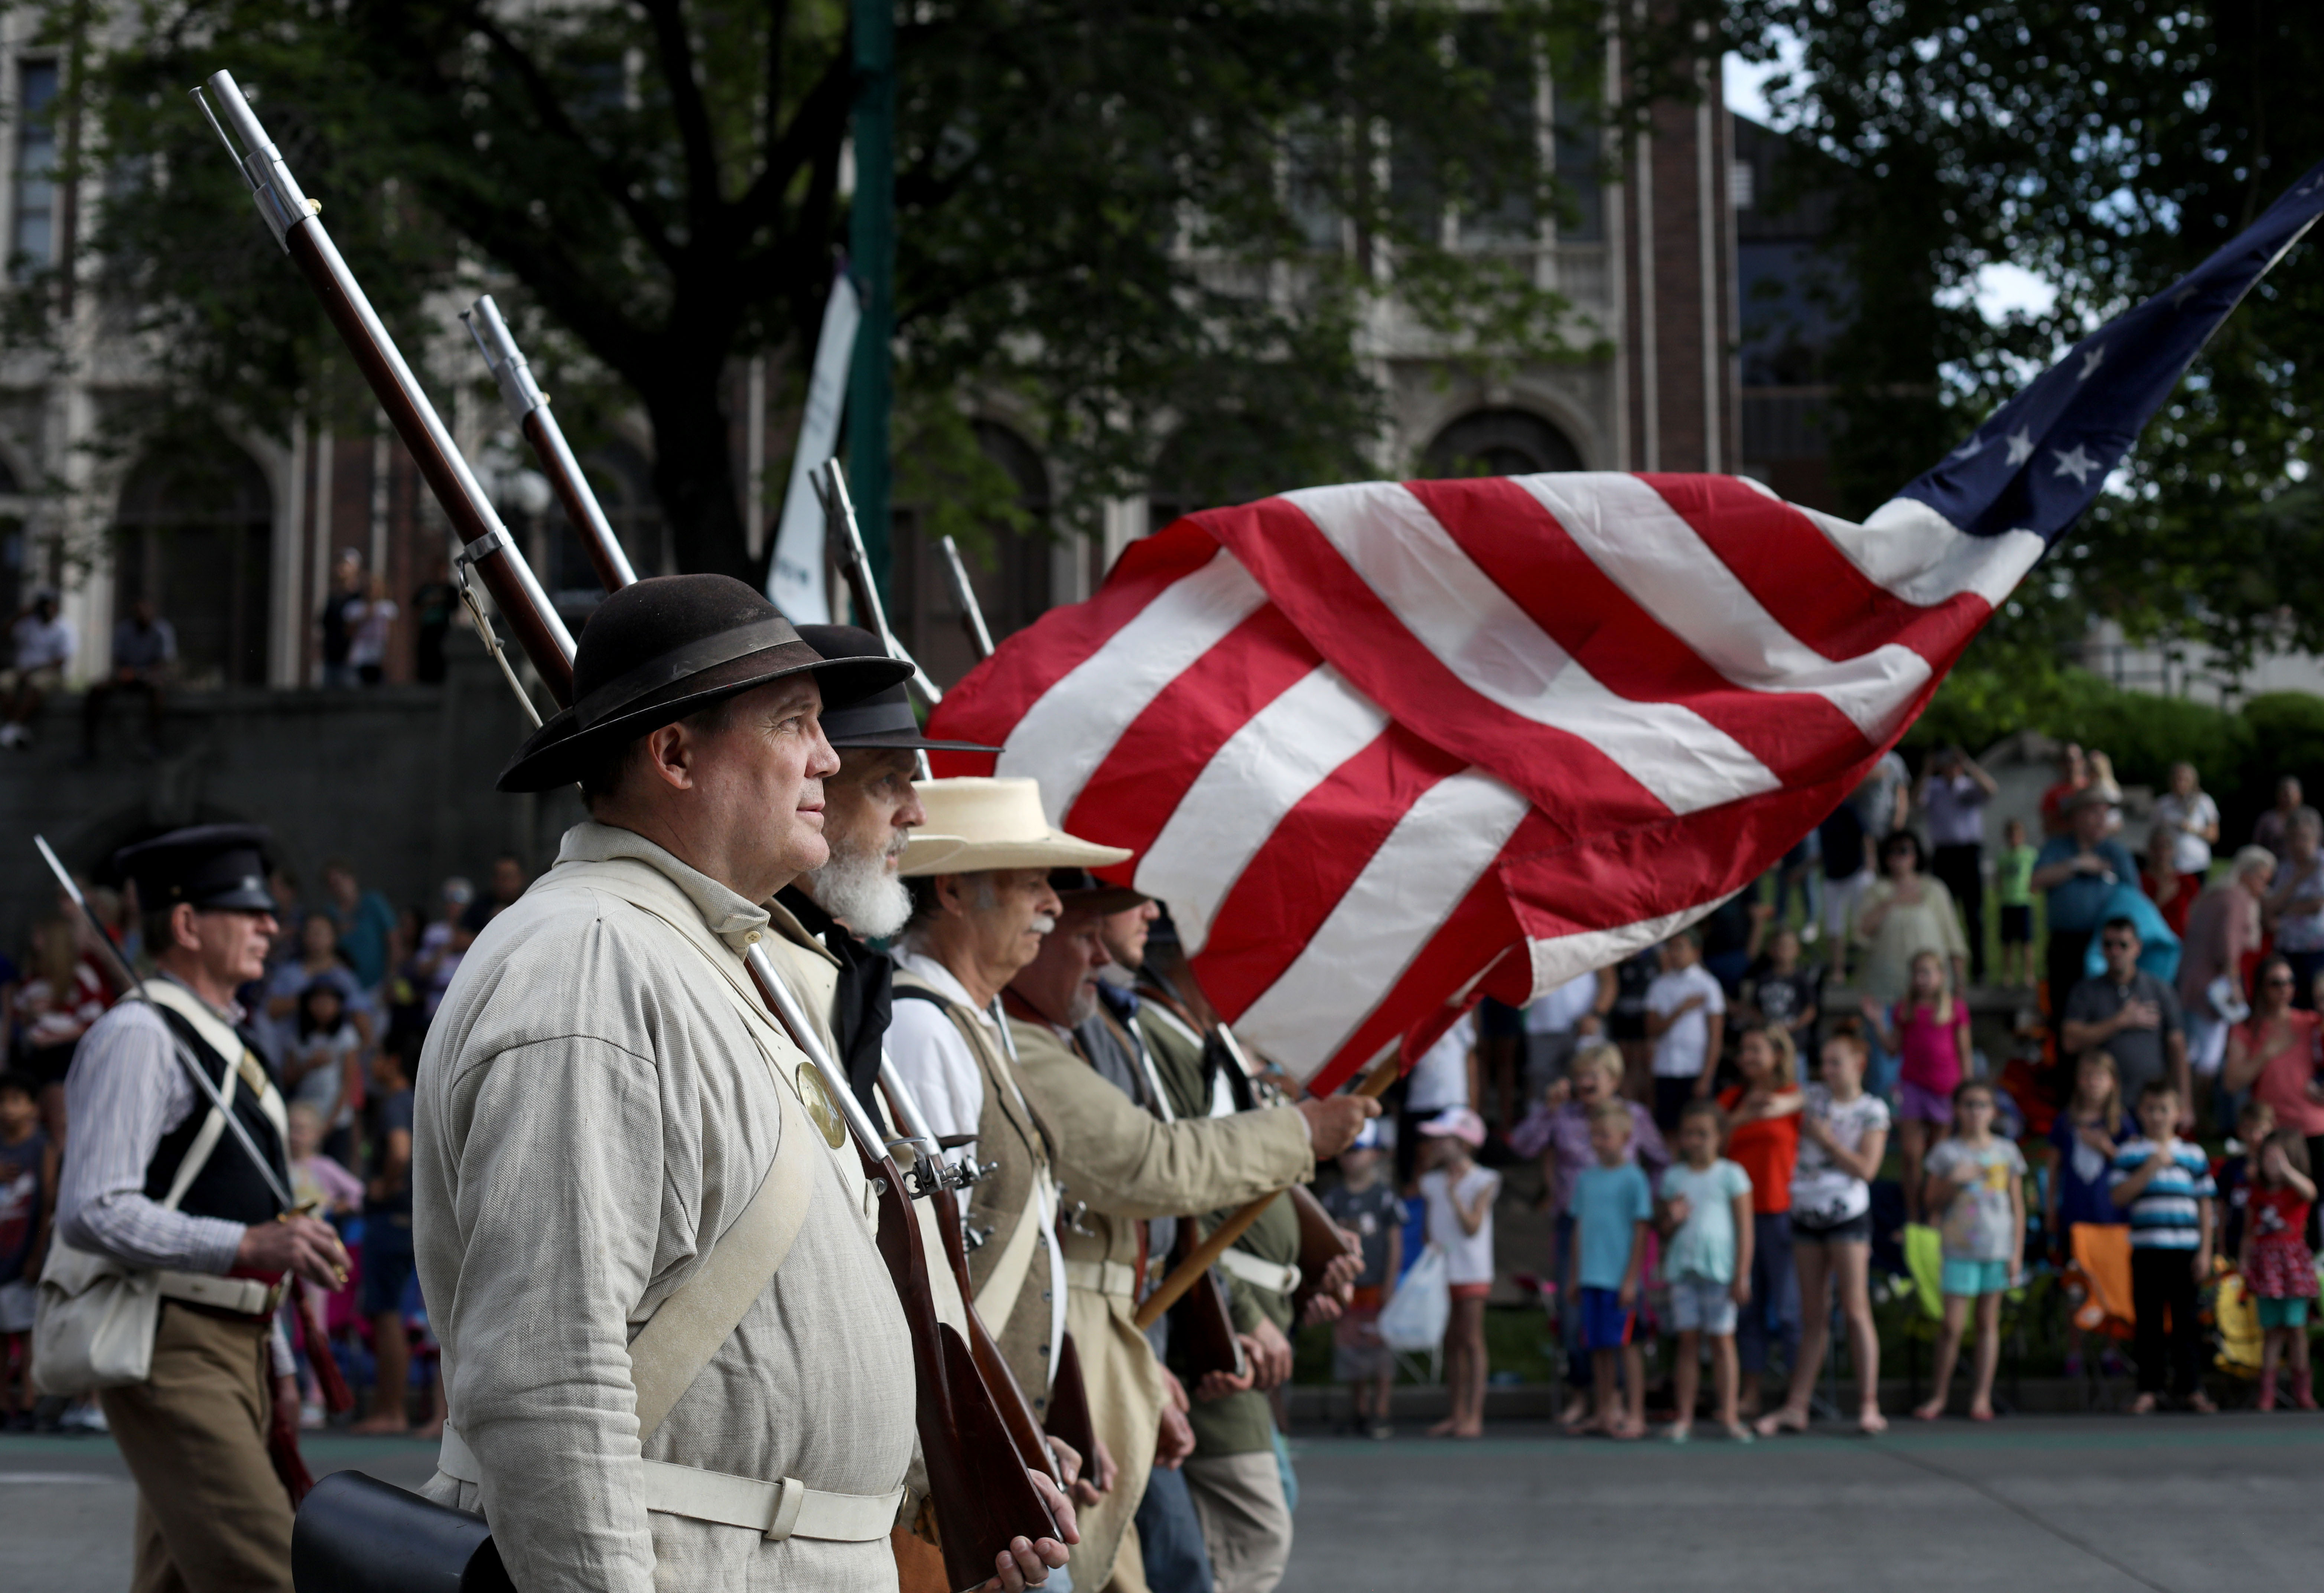 The Mormon Battalion Color Guard marches in the Days of '47 Parade in Salt Lake City on Wednesday, July 24, 2019.